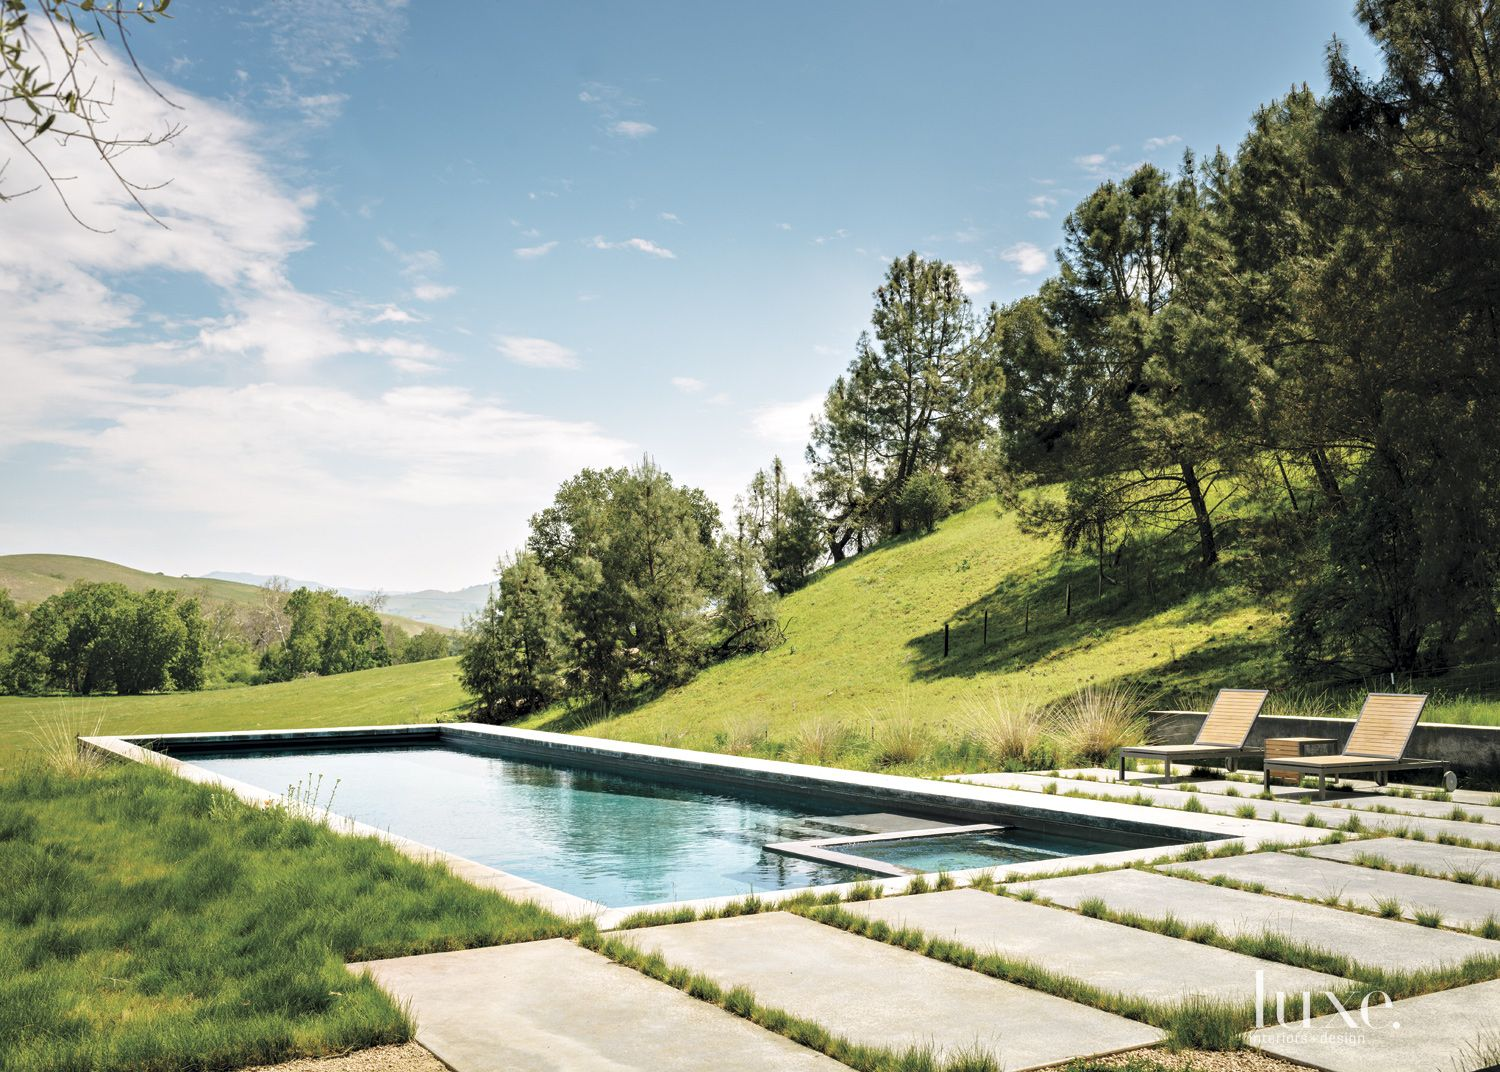 Modern Neutral Poolside with Grass Between Pavers